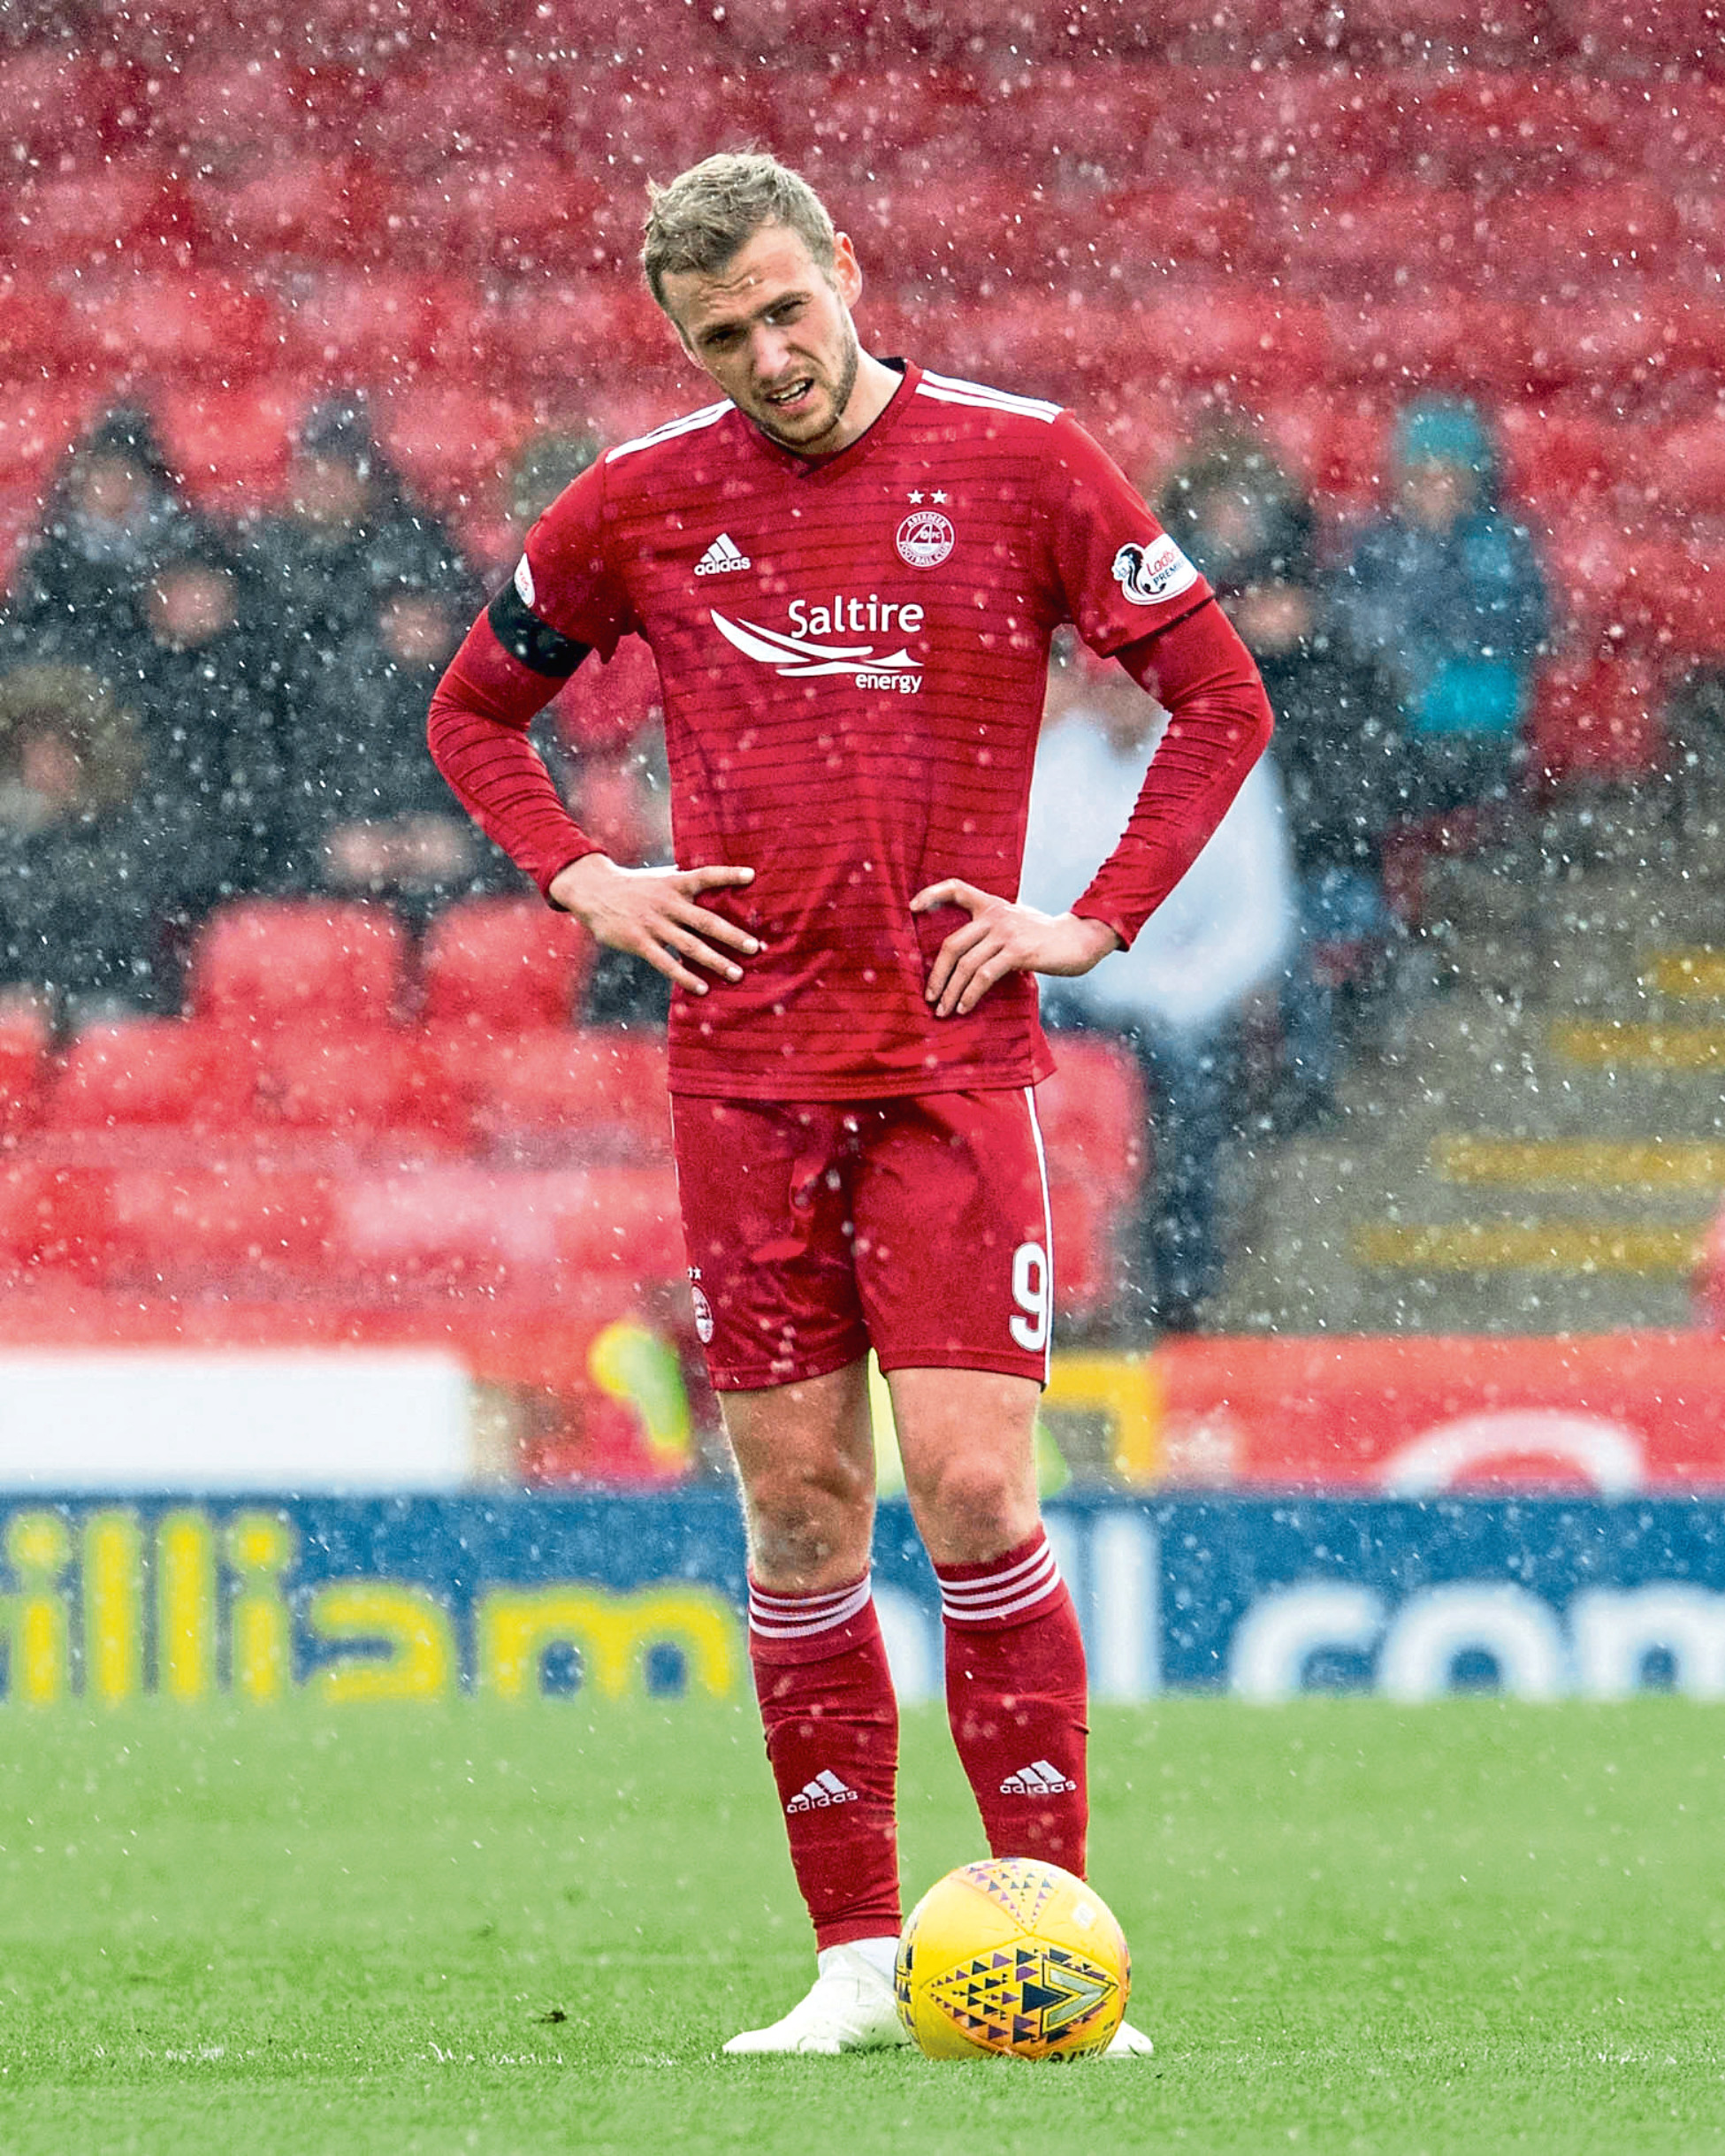 Aberdeen's James Wilson looks dejected during their game against Celtic at Pittodrie